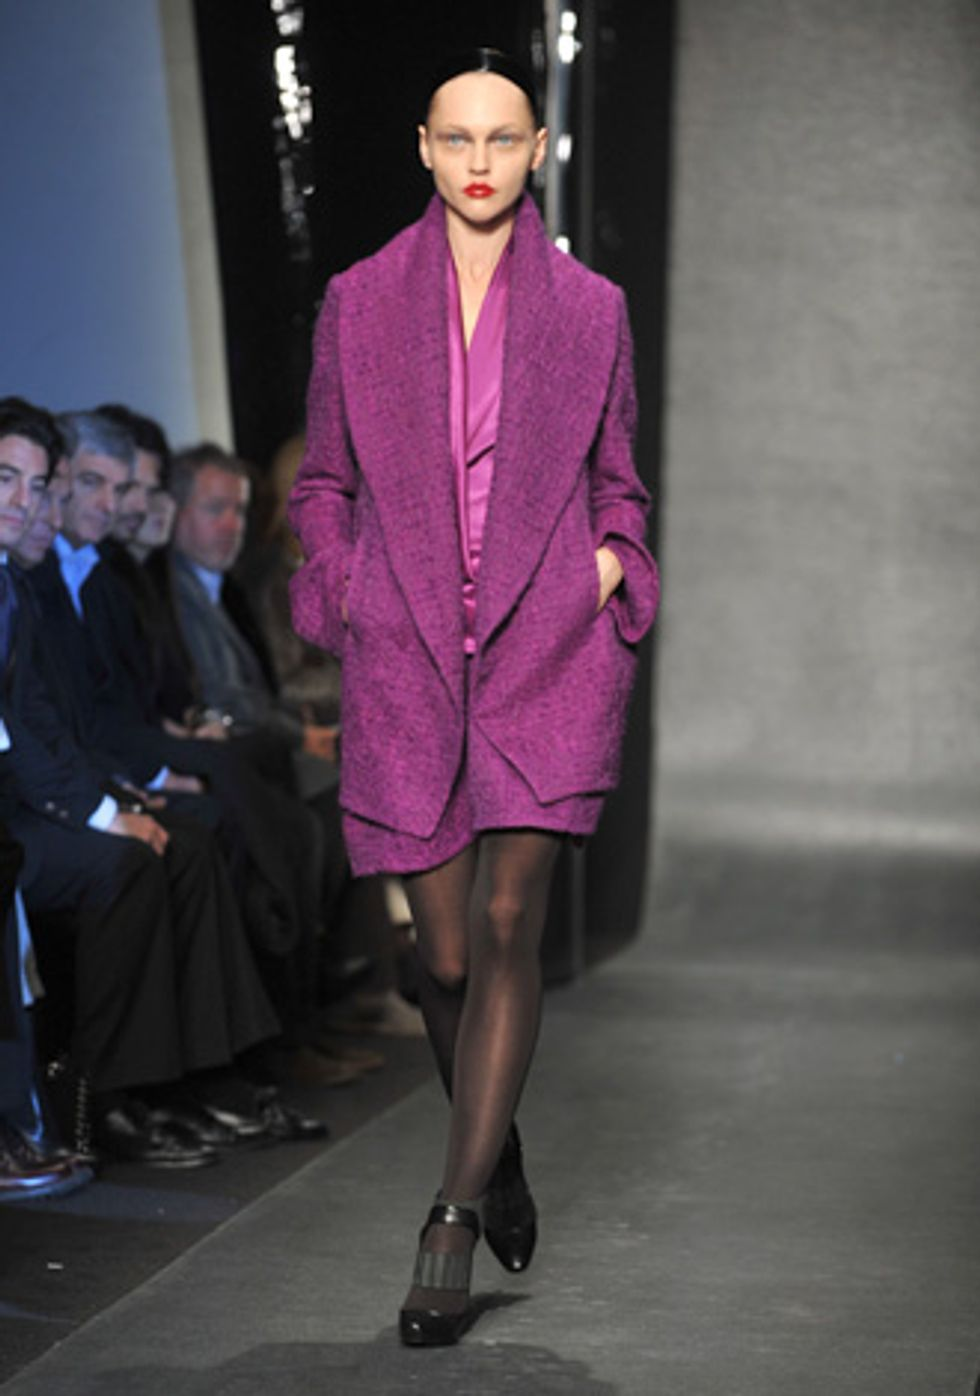 Scenes from the Donna Karan Fall 2010 Show